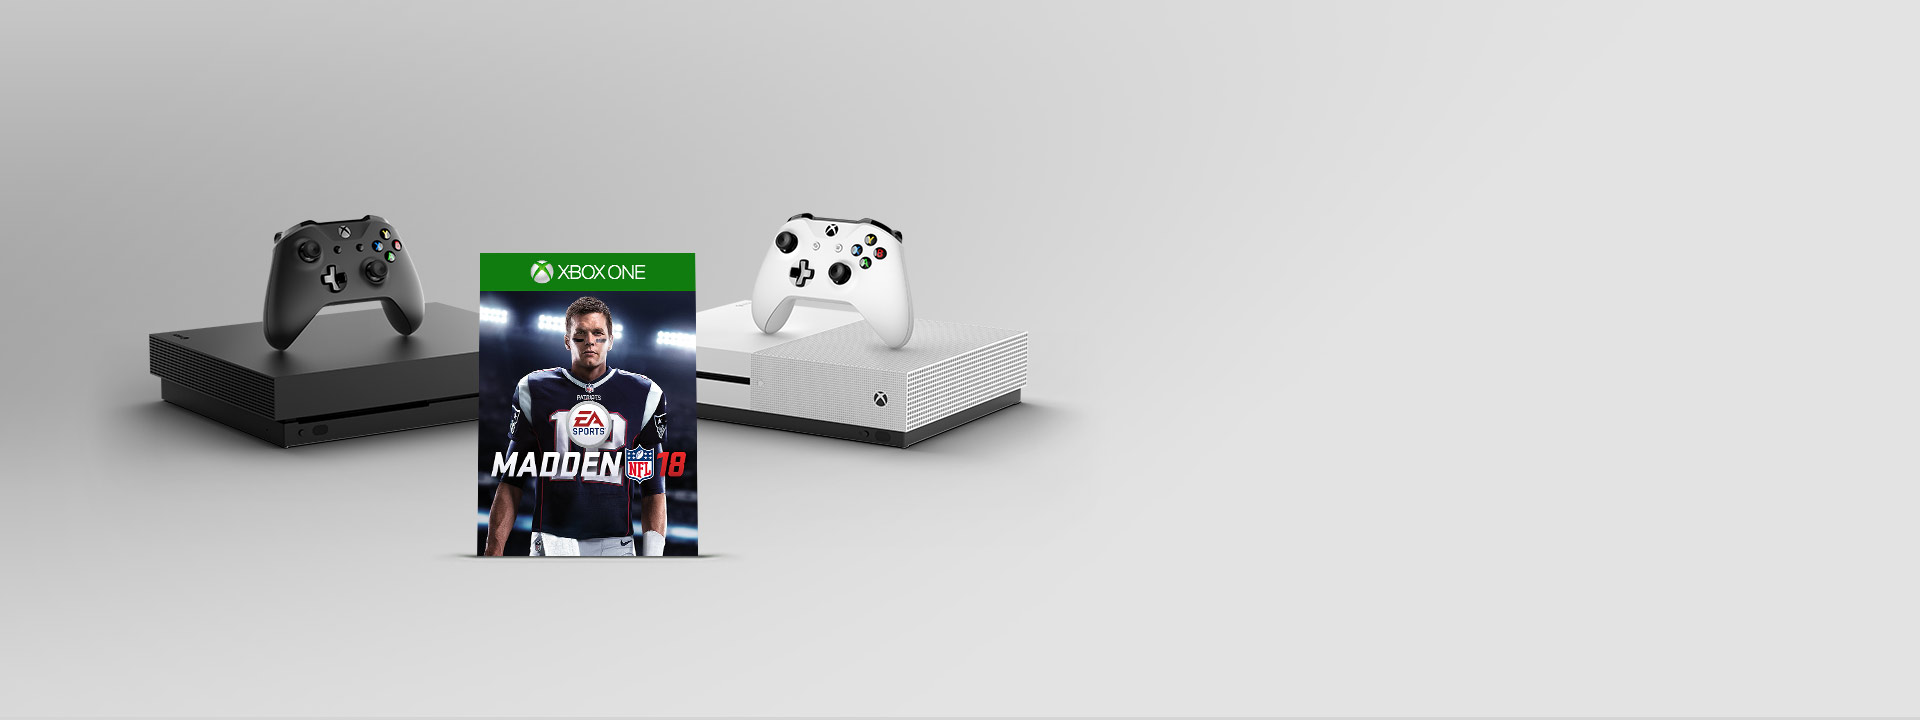 Xbox One X and Xbox One S with Madden 18 boxshot inbetween